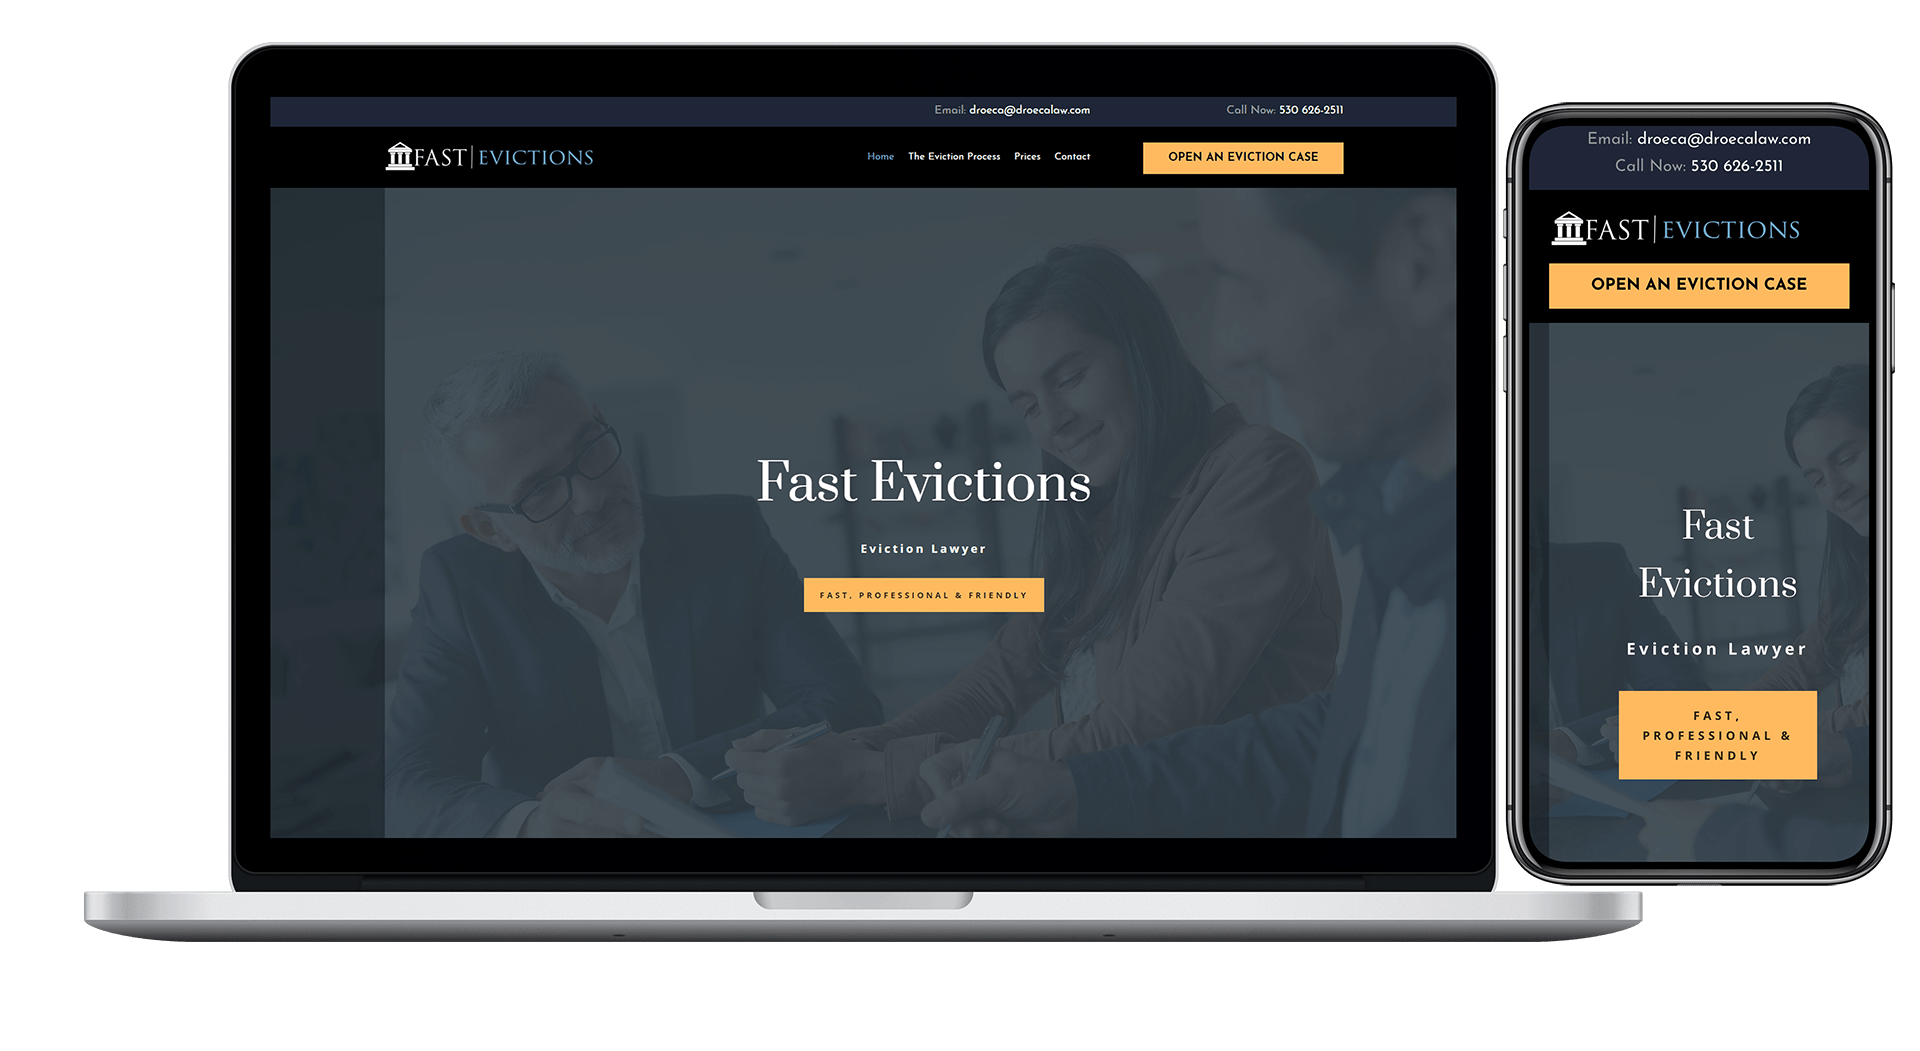 Fast Evictions - Are you an Attorney that needs a new or redesigned website? Hire the best Lawyer Website Designer today, Blue Frog Web Design